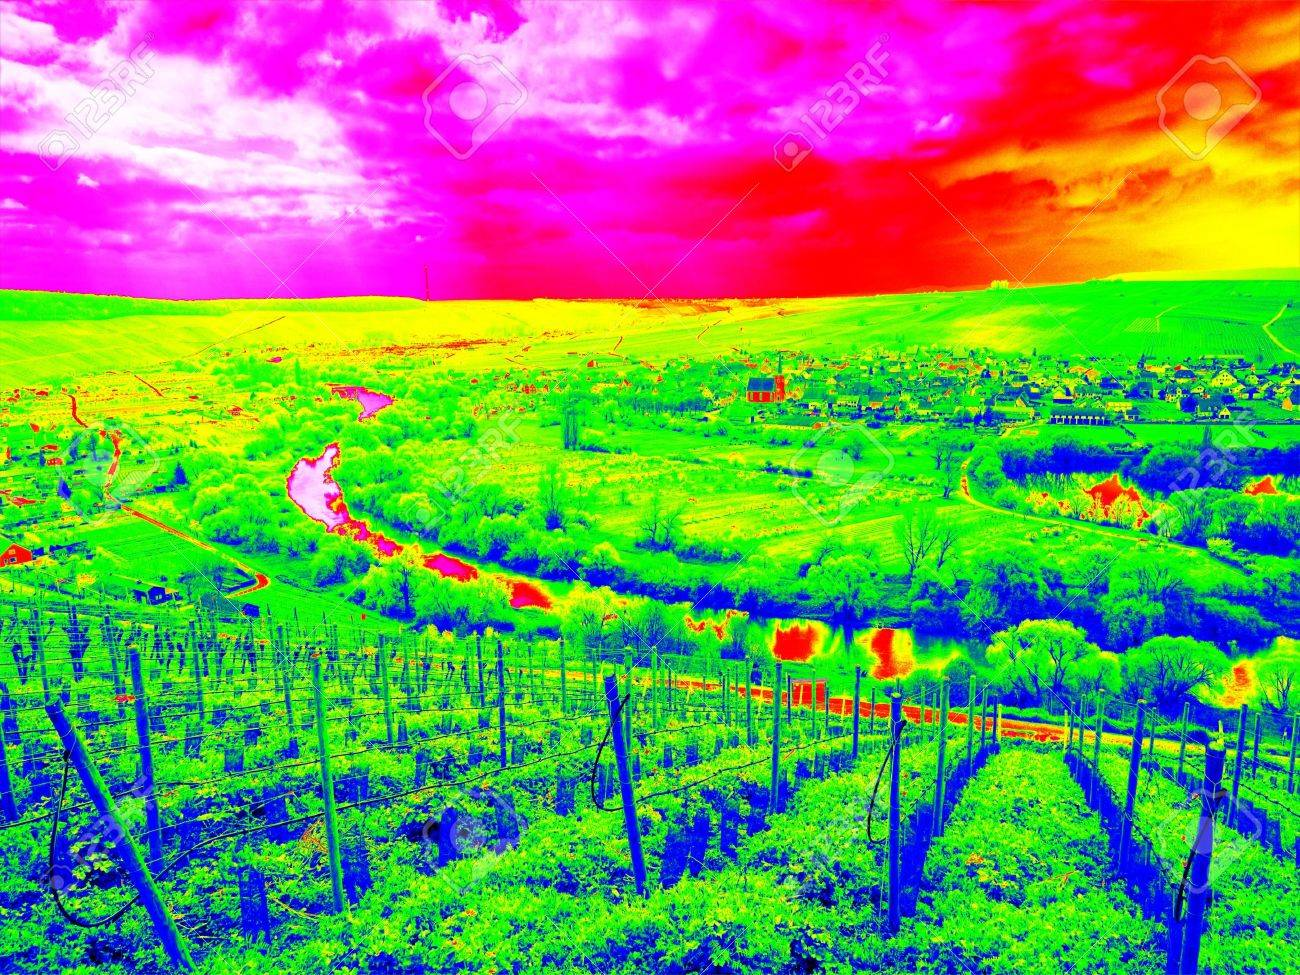 Infrared scan of young vineyards arranged in regular rows covering rolling landscape, agriculture and environment together - 59061714